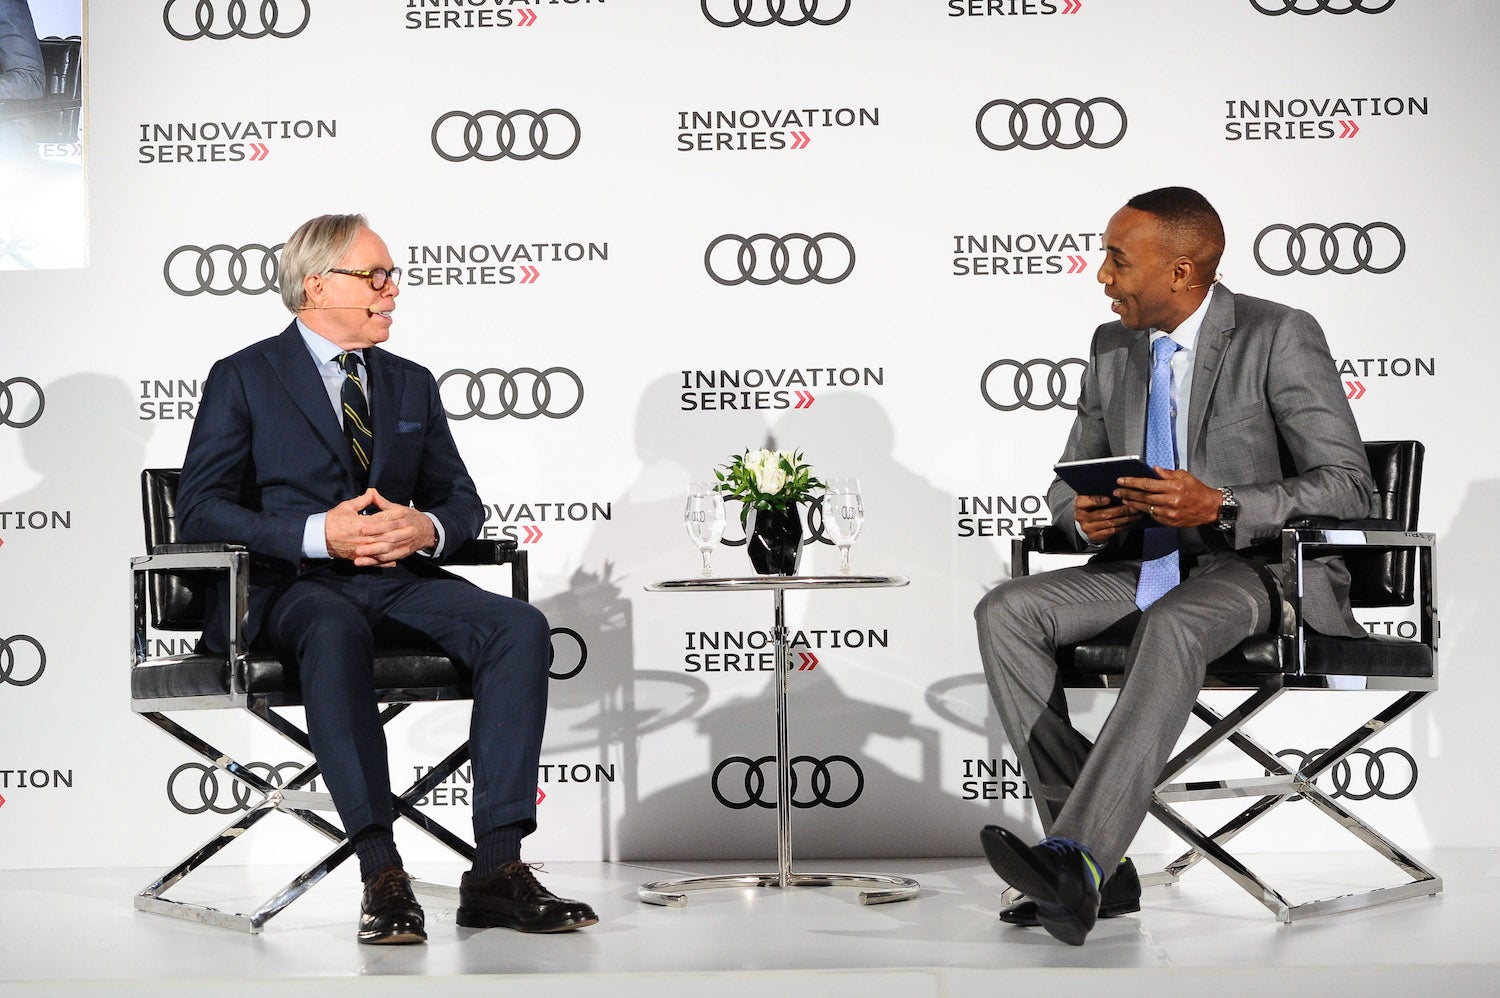 Tommy Hilfiger and Dwight Drummond at Audi Canada Innovation Series